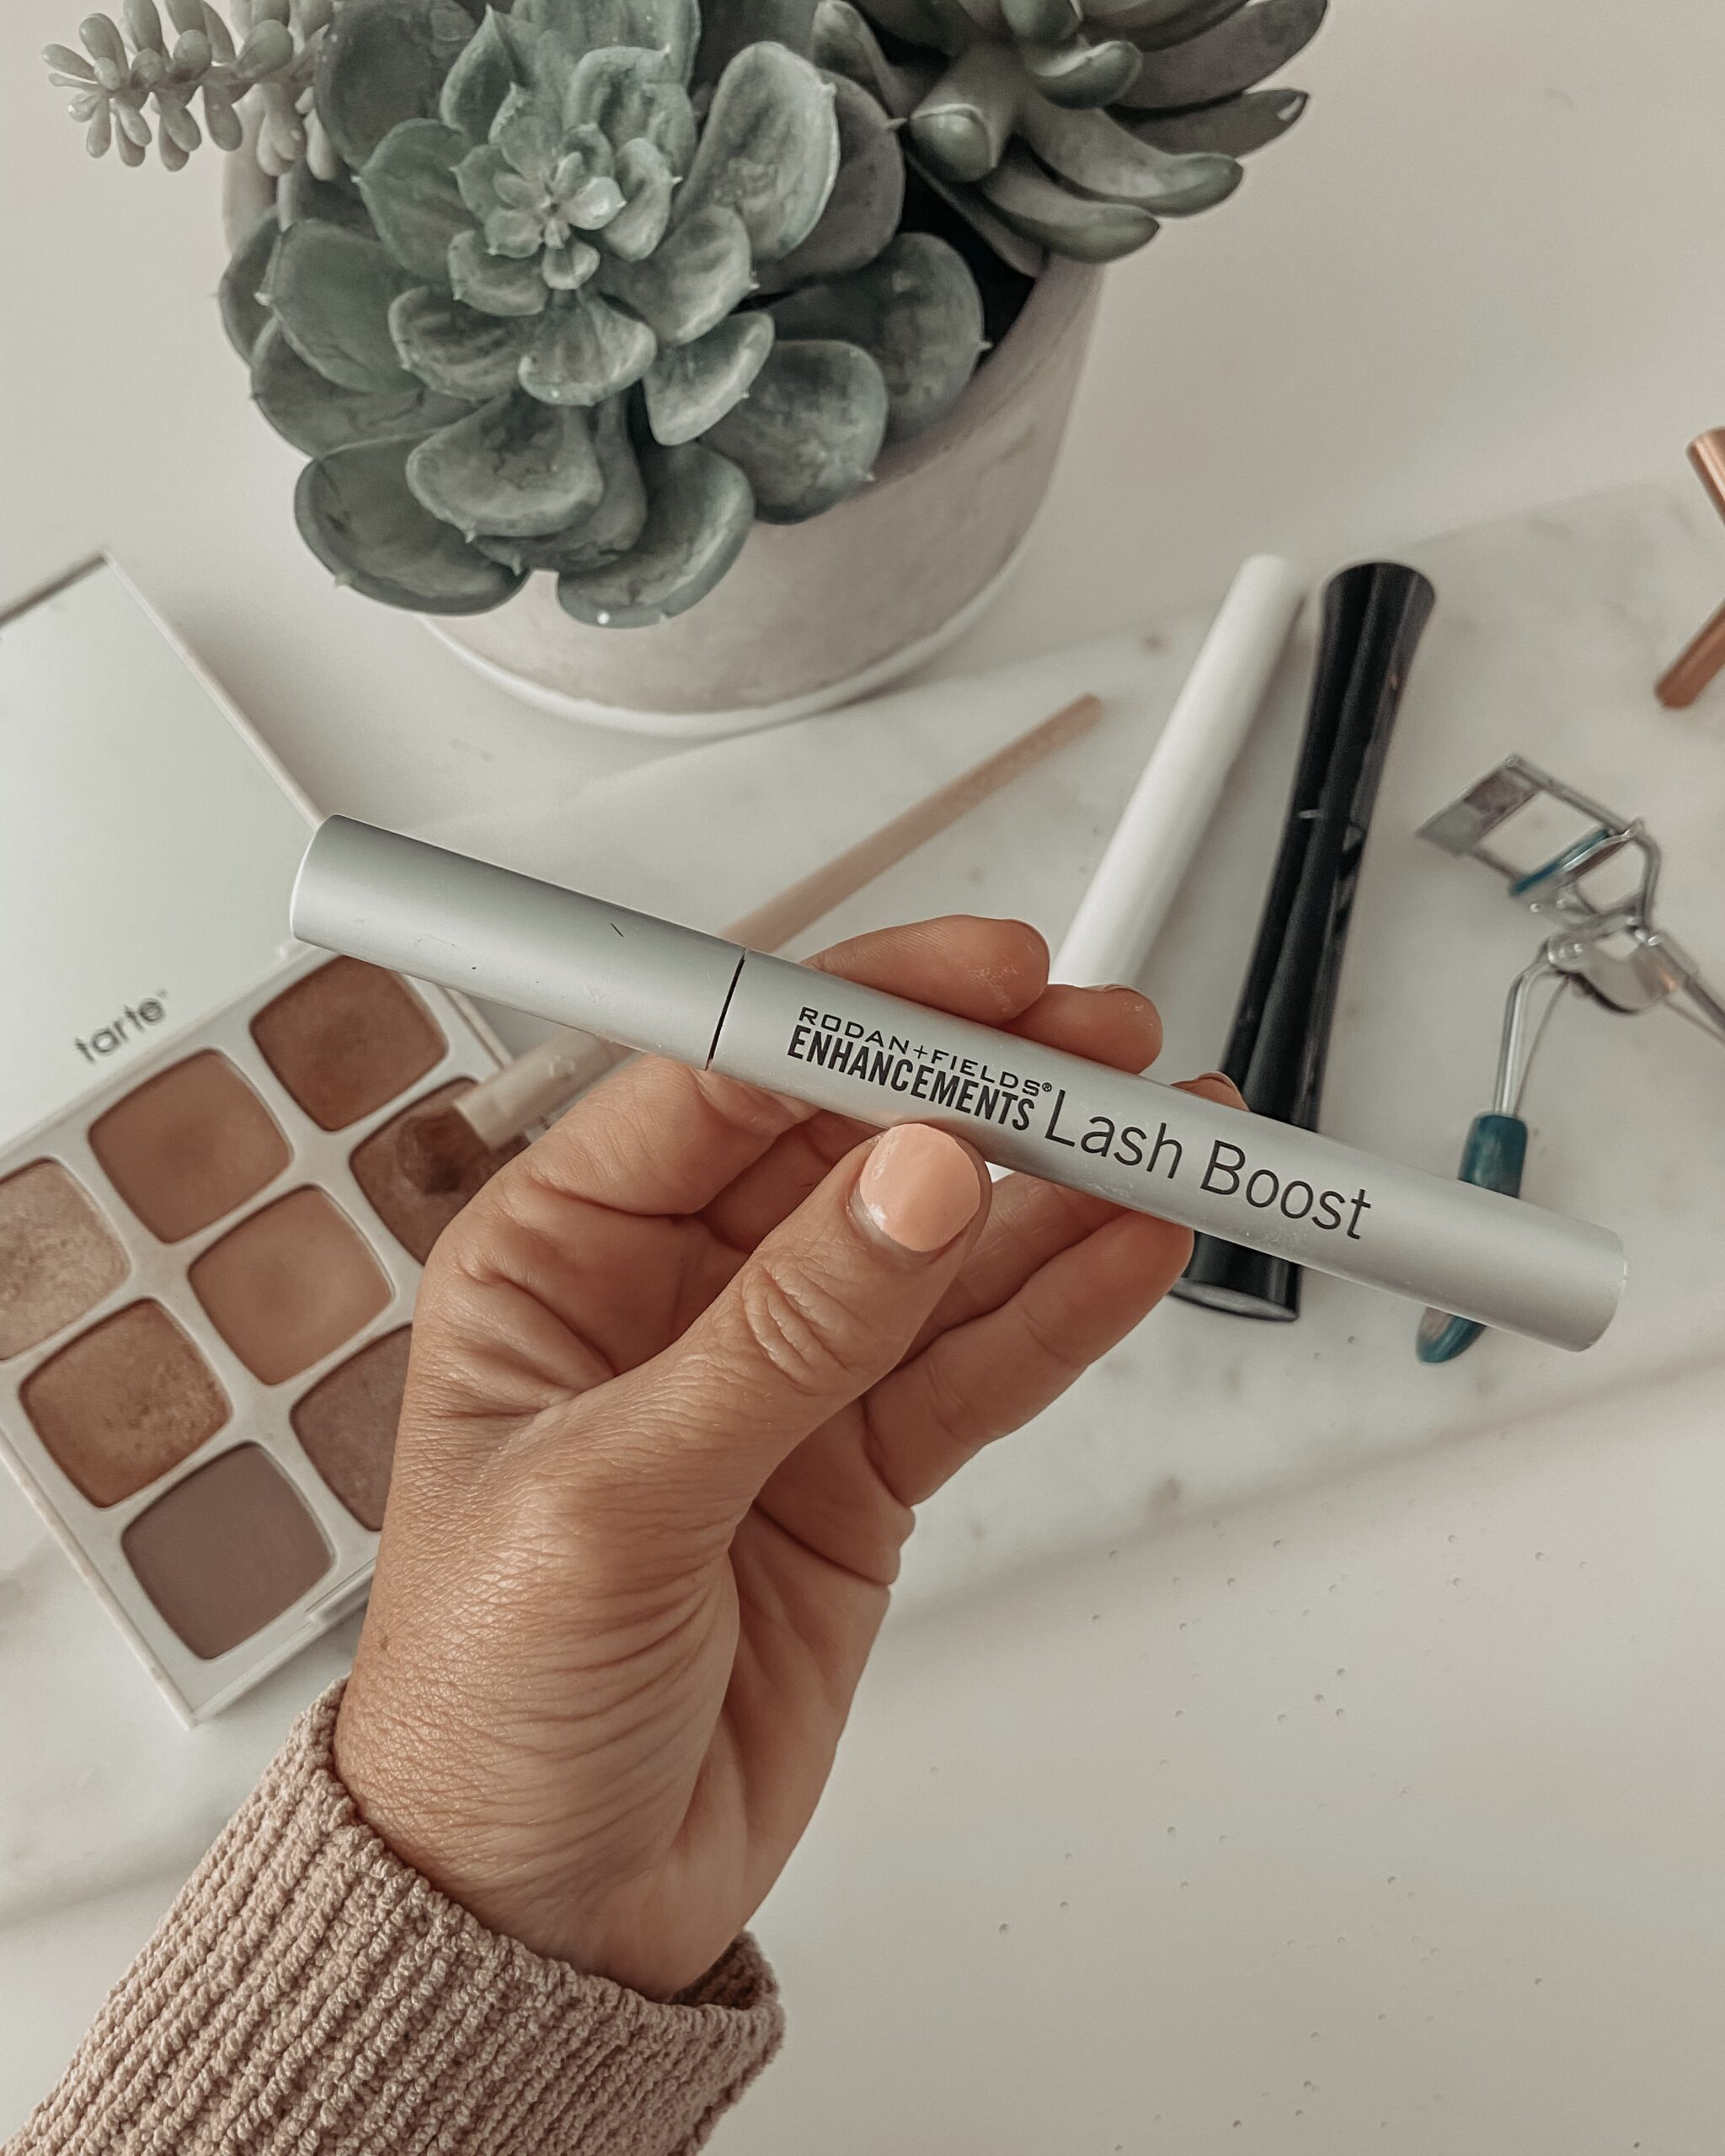 RODAN + FIELDS PRODUCT REVIEW: LASHBOOST + BROW DEFINING BOOST- Jaclyn De Leon Style. Sharing my review of lash and brow enhancing products from R+F.